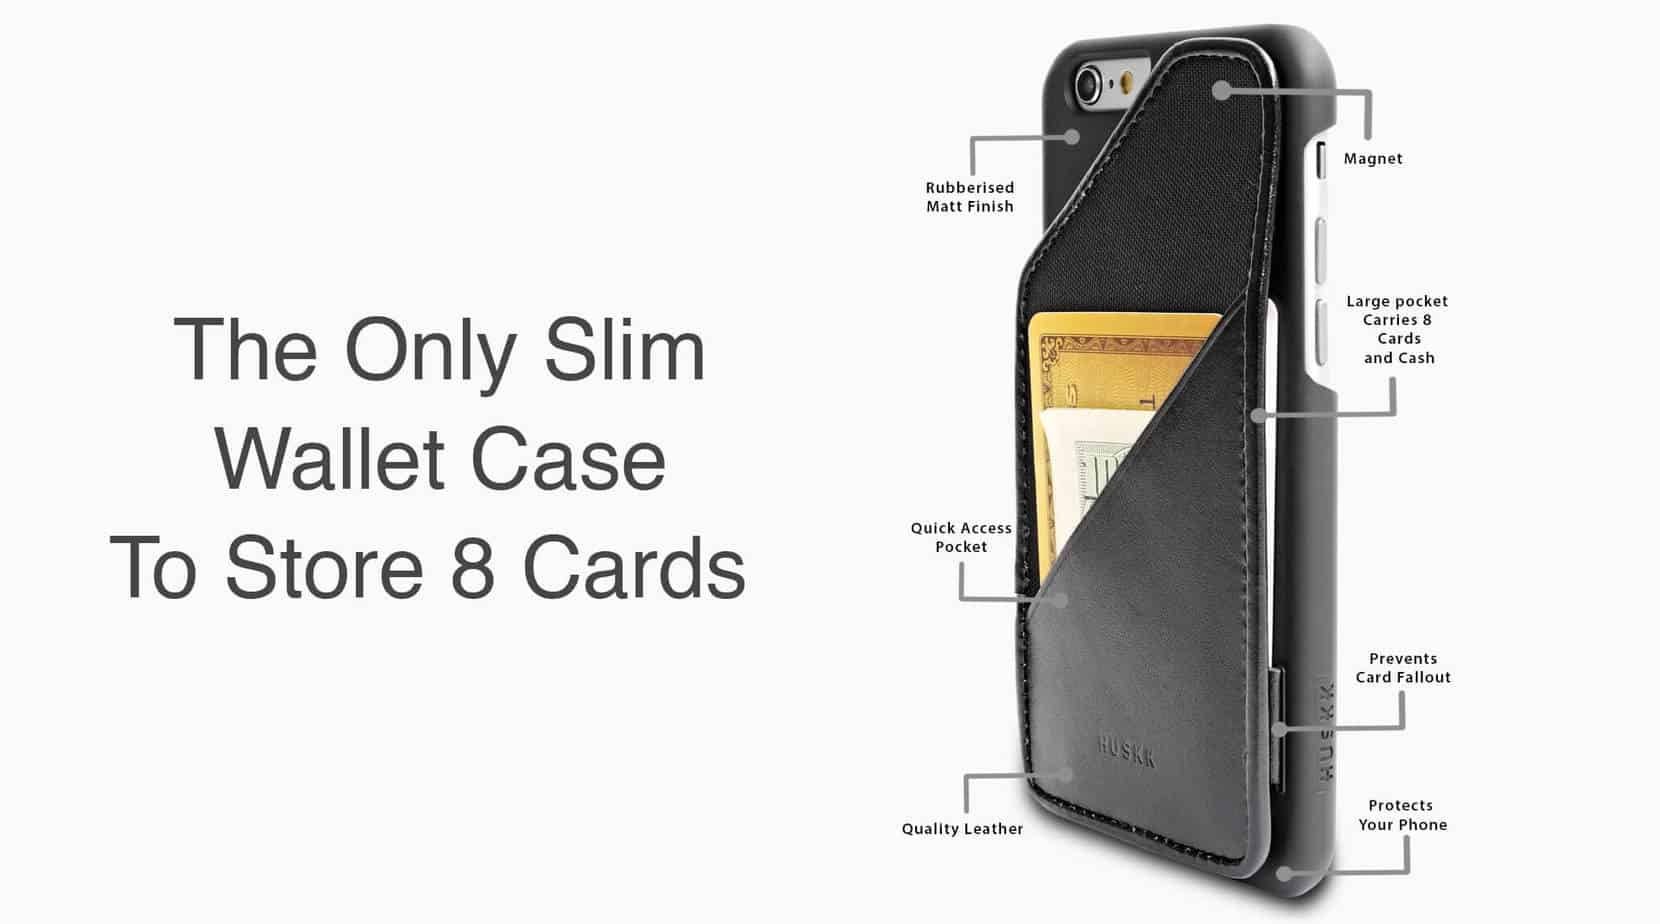 Huskk Cell Phone Case Giveaway